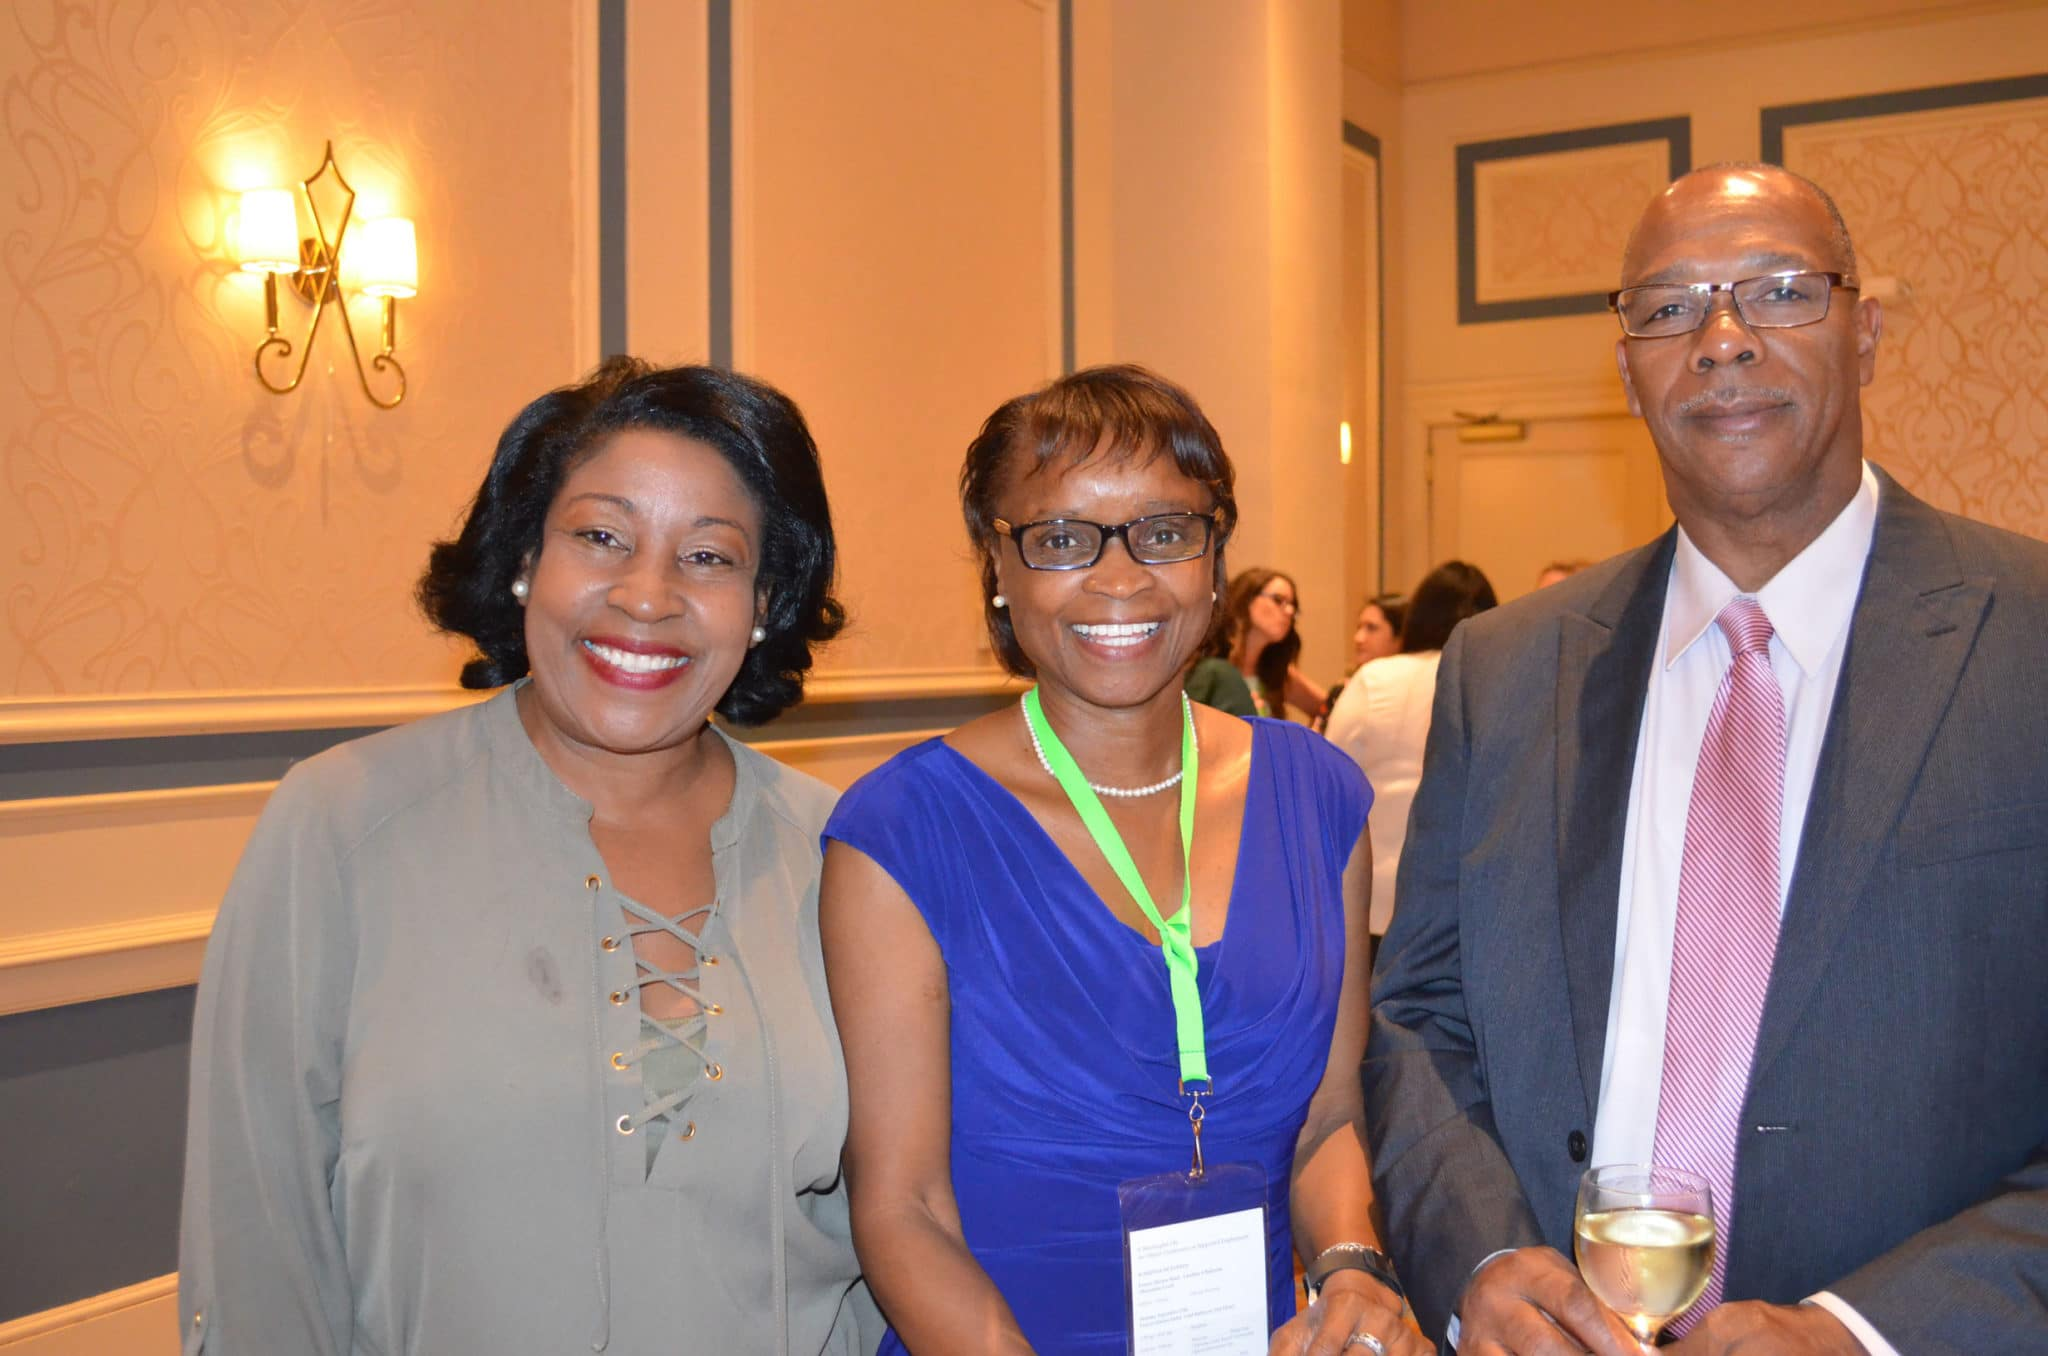 On September 24-27, 2017 Community Options hosted its 11th Annual iMatter Conference A Meaningful Life: Conference on Supported Employment at the Francis Marion Hotel in Charleston, SC. The Welcome Reception was Sunday, September 24th @ 6:00 pm at Francis Marion Hotel - Carolina A Ballroom (Mezzanine Level).